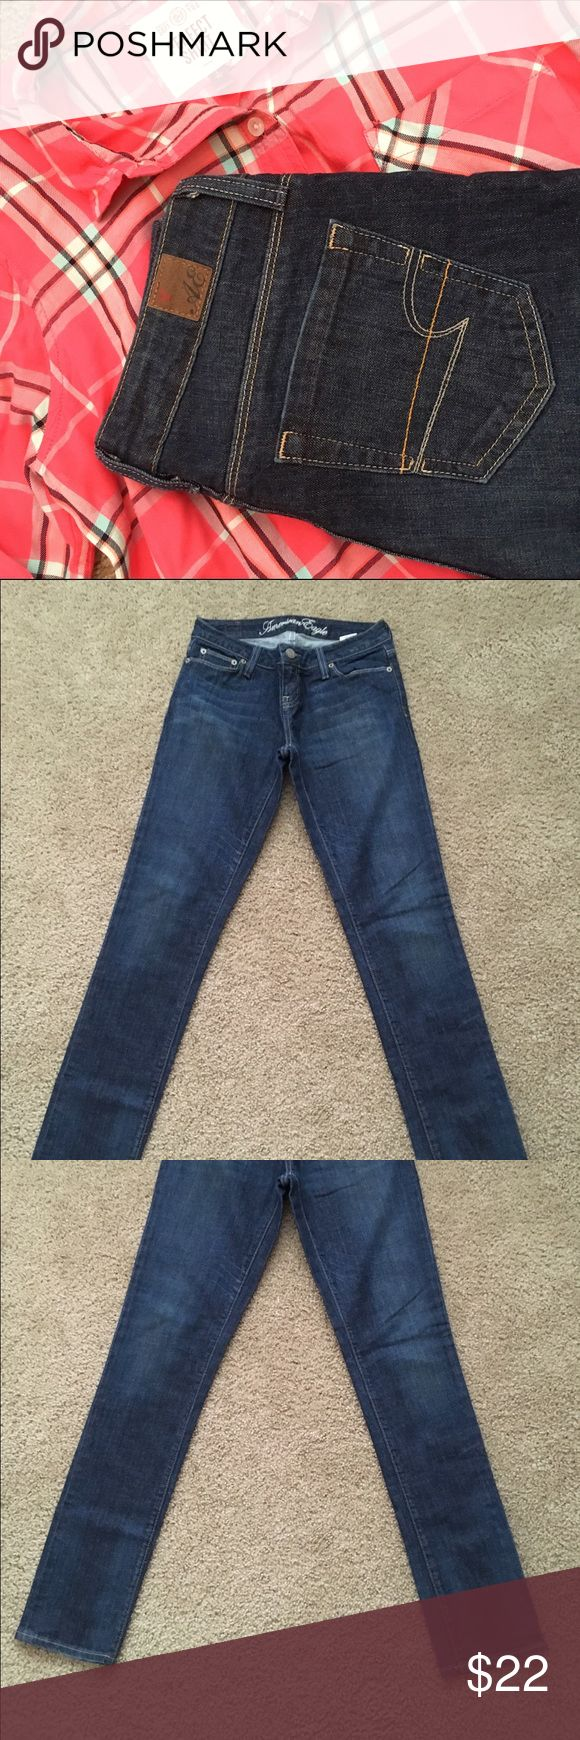 """American Eagle Outfitters skinny jeans American Eagle Outfitters skinny jeans. 99% cotton, 1% spandex. Approximate 32"""" inseam. American Eagle Outfitters Jeans Skinny"""